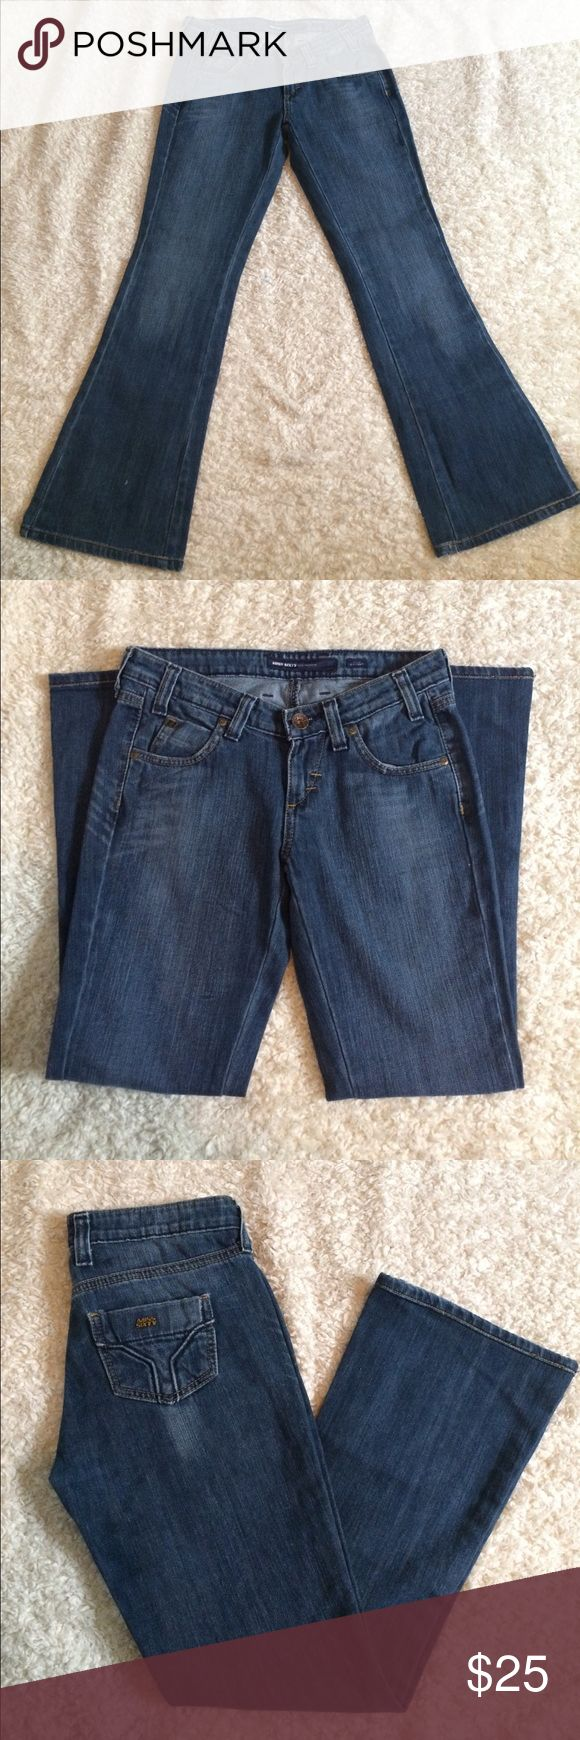 Miss Sixty Jeans Size 27 x 32 Ex Love Denim Miss Sixty Jeans Size 27 x 32 Ex Love Denim smoke free home if you have any questions let me know Miss Sixty Jeans